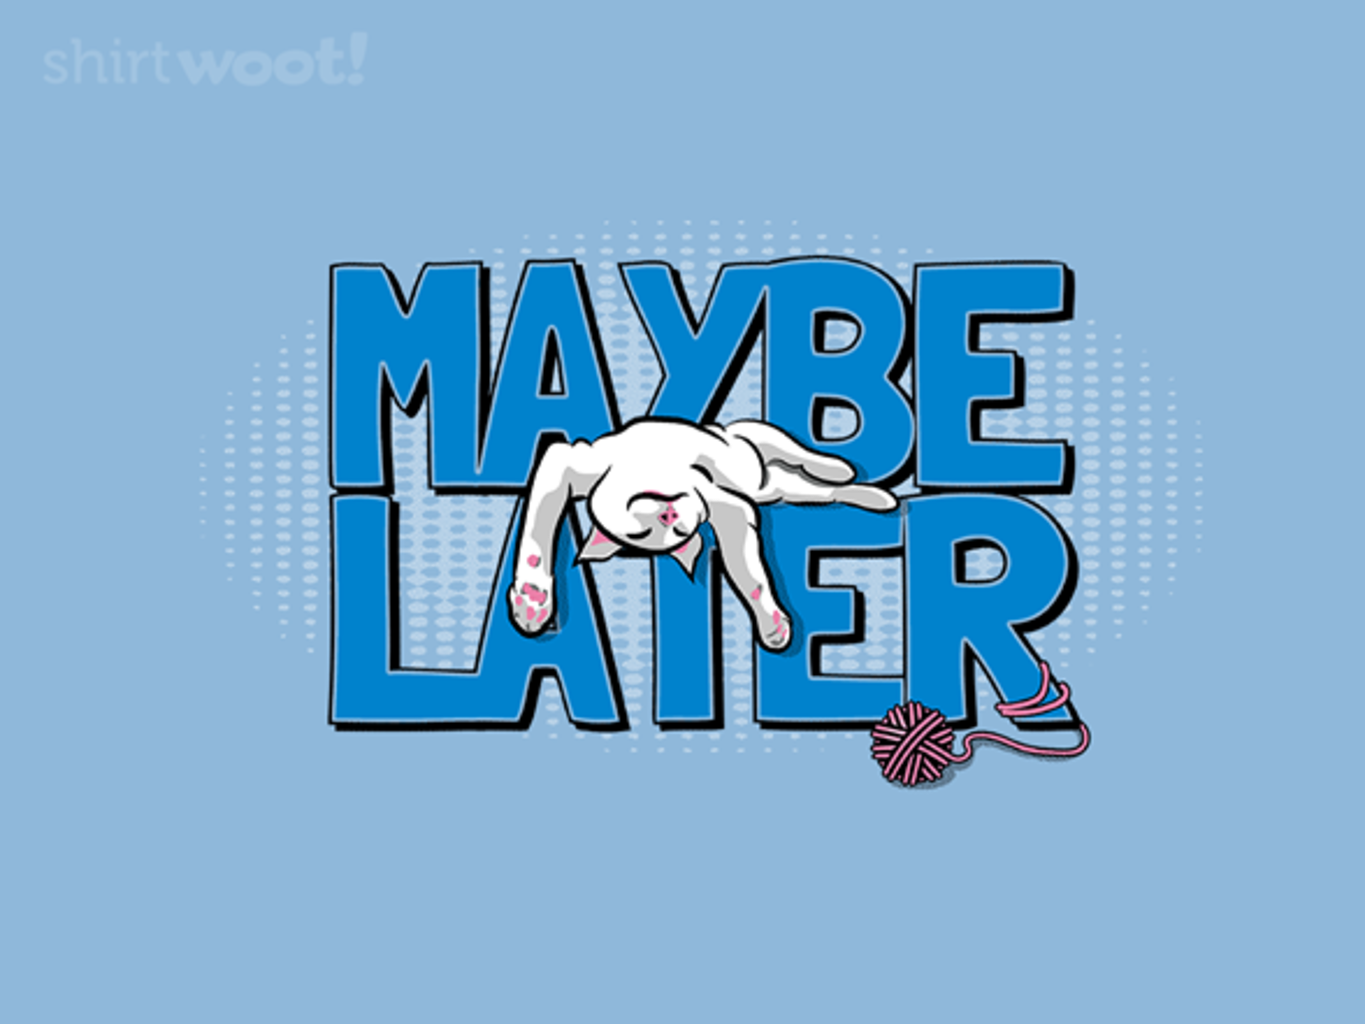 Woot!: Maybe Later - $15.00 + Free shipping